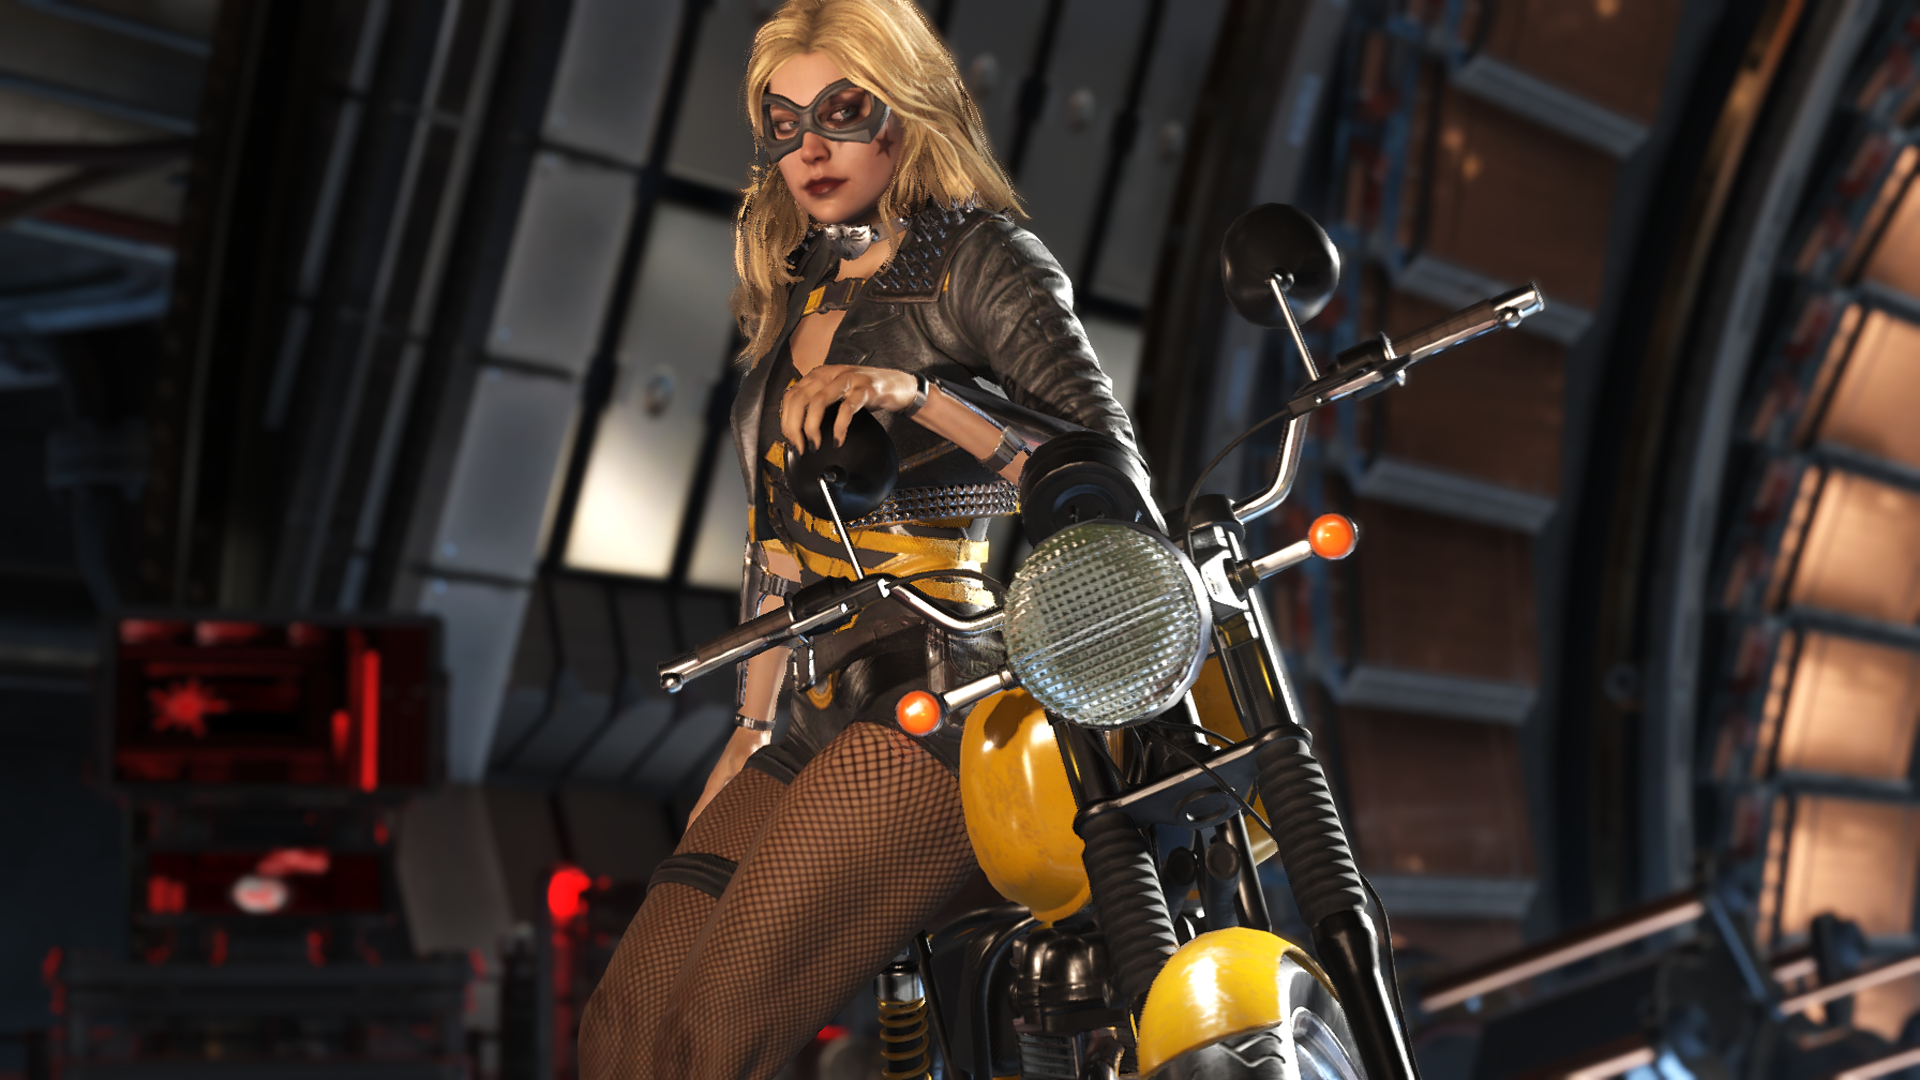 Injustice 2 Black Canary Begining Pose By Cruzermodz Black Canary Injustice 2 Black Canary Injustice 2